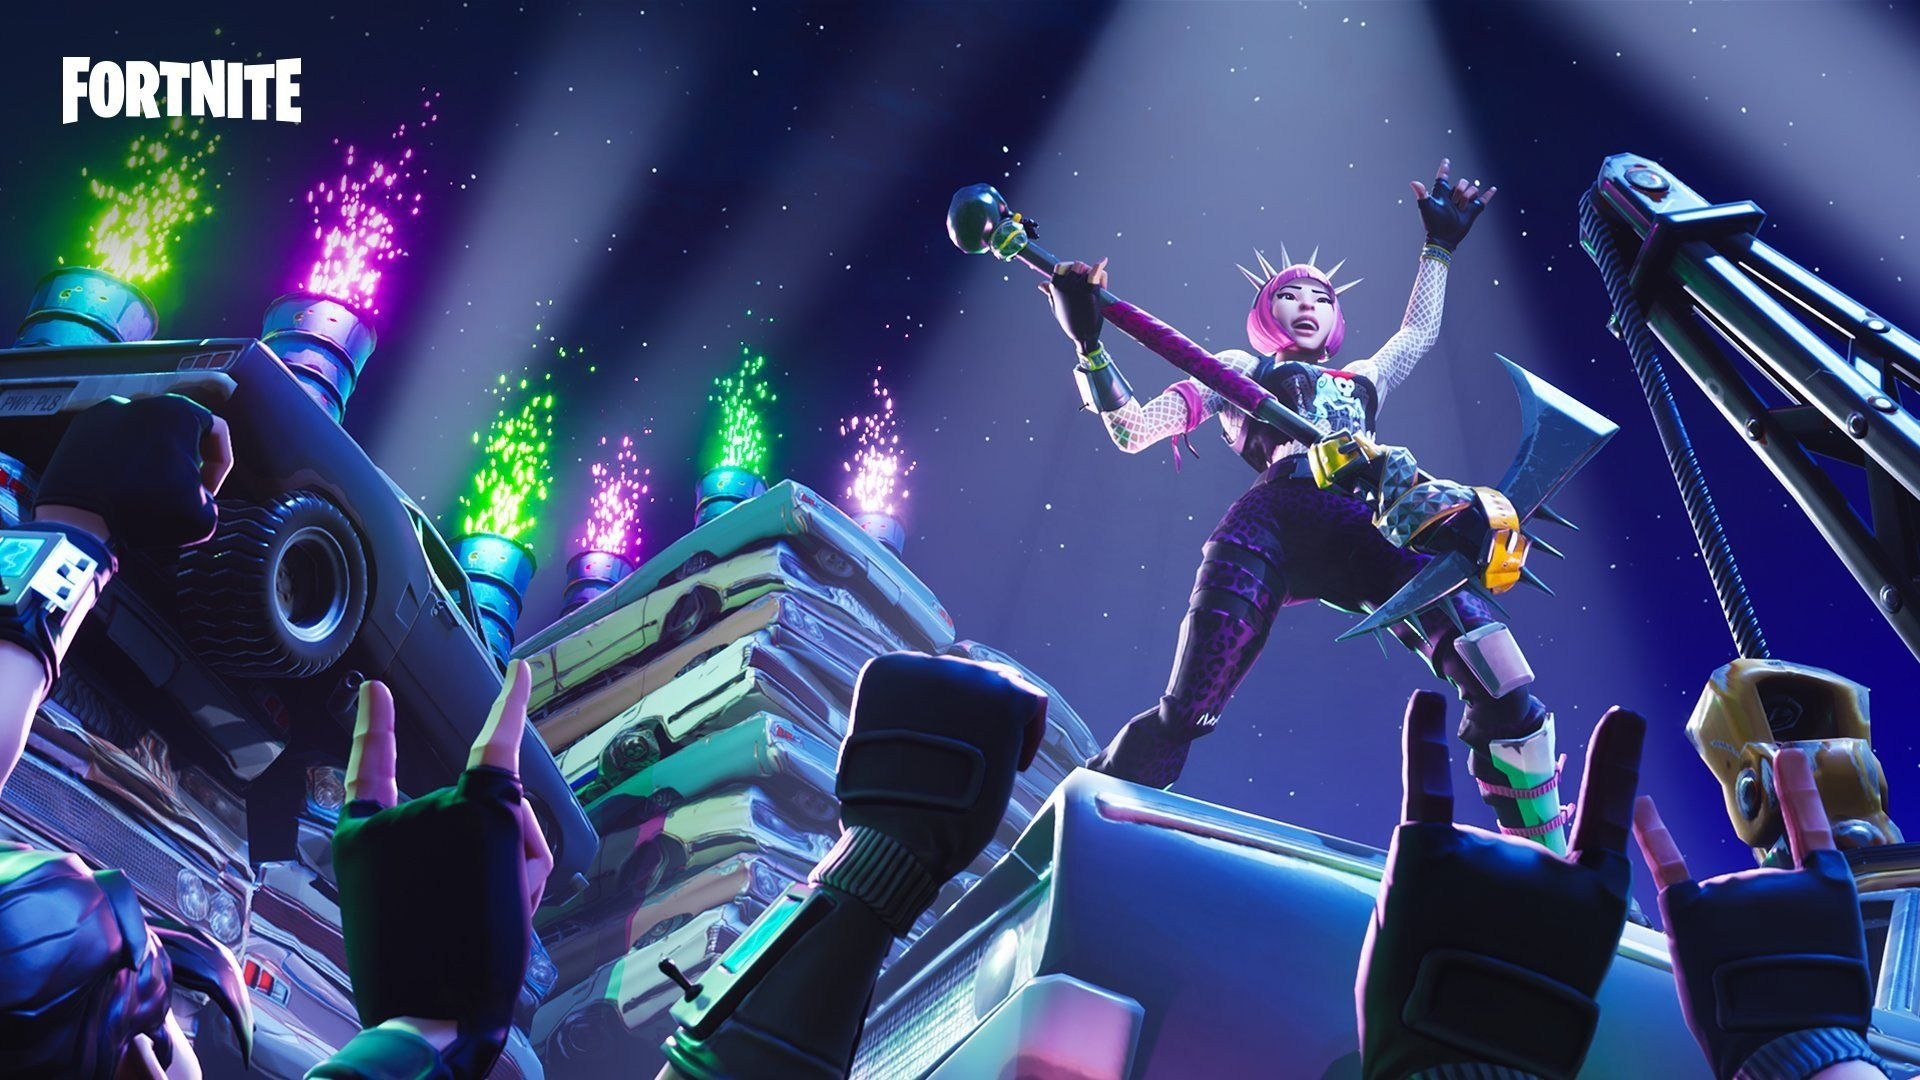 Fortnite Travis Scott Wallpaper For Mobile Phone Tablet Desktop Computer And Other Devices Hd And 4k Wallpapers In 2020 Fortnite Battle Games Chance The Rapper